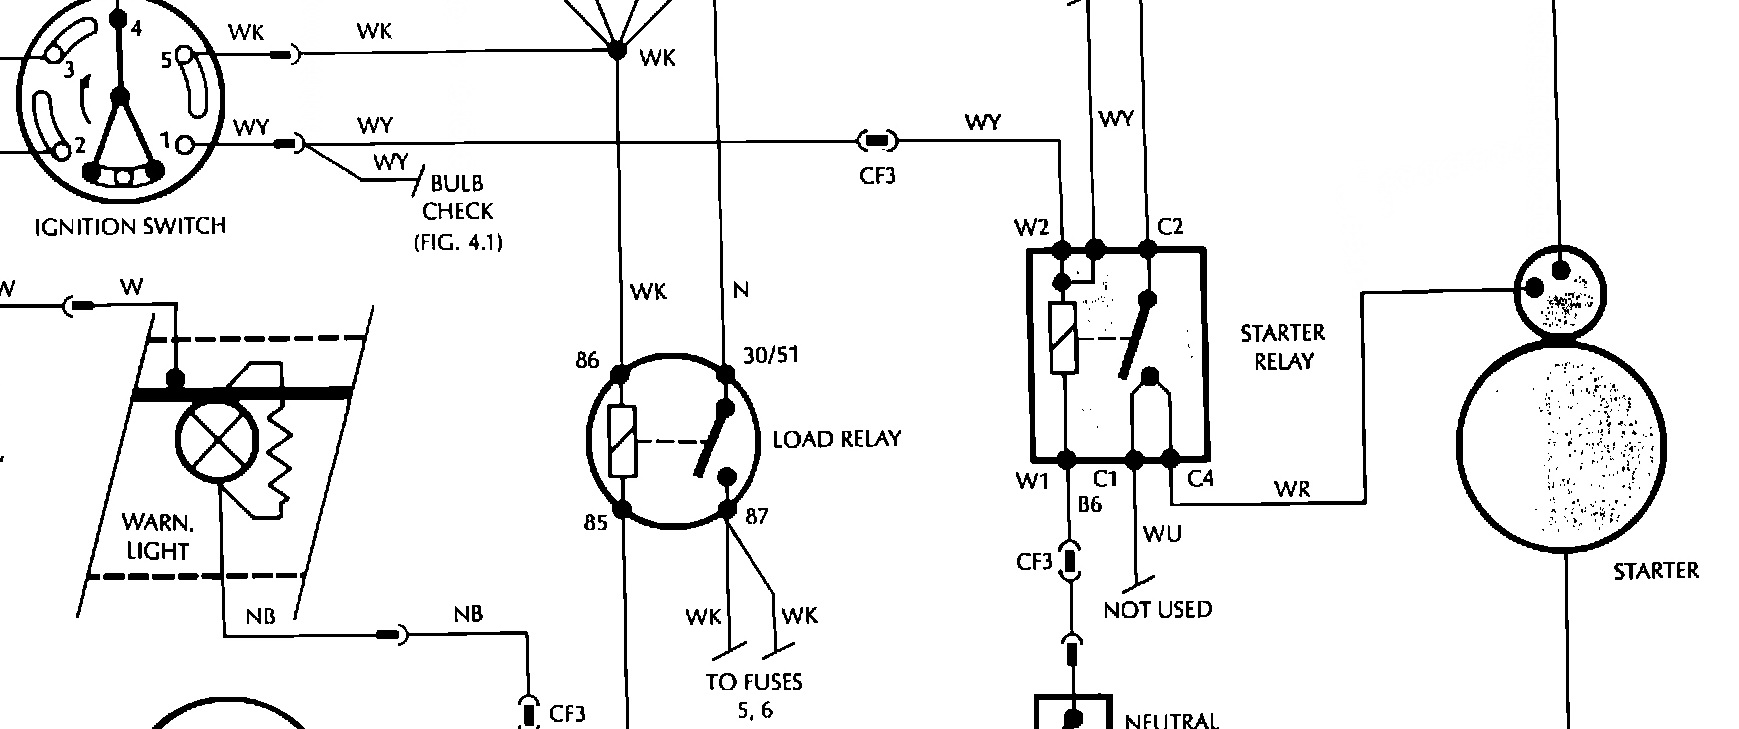 2012 06 17_060149_xj6_starter_wiring 986 jag xj6 thanks for your answer on the thotle body gate opening XJ6 Wiring-Diagram at creativeand.co